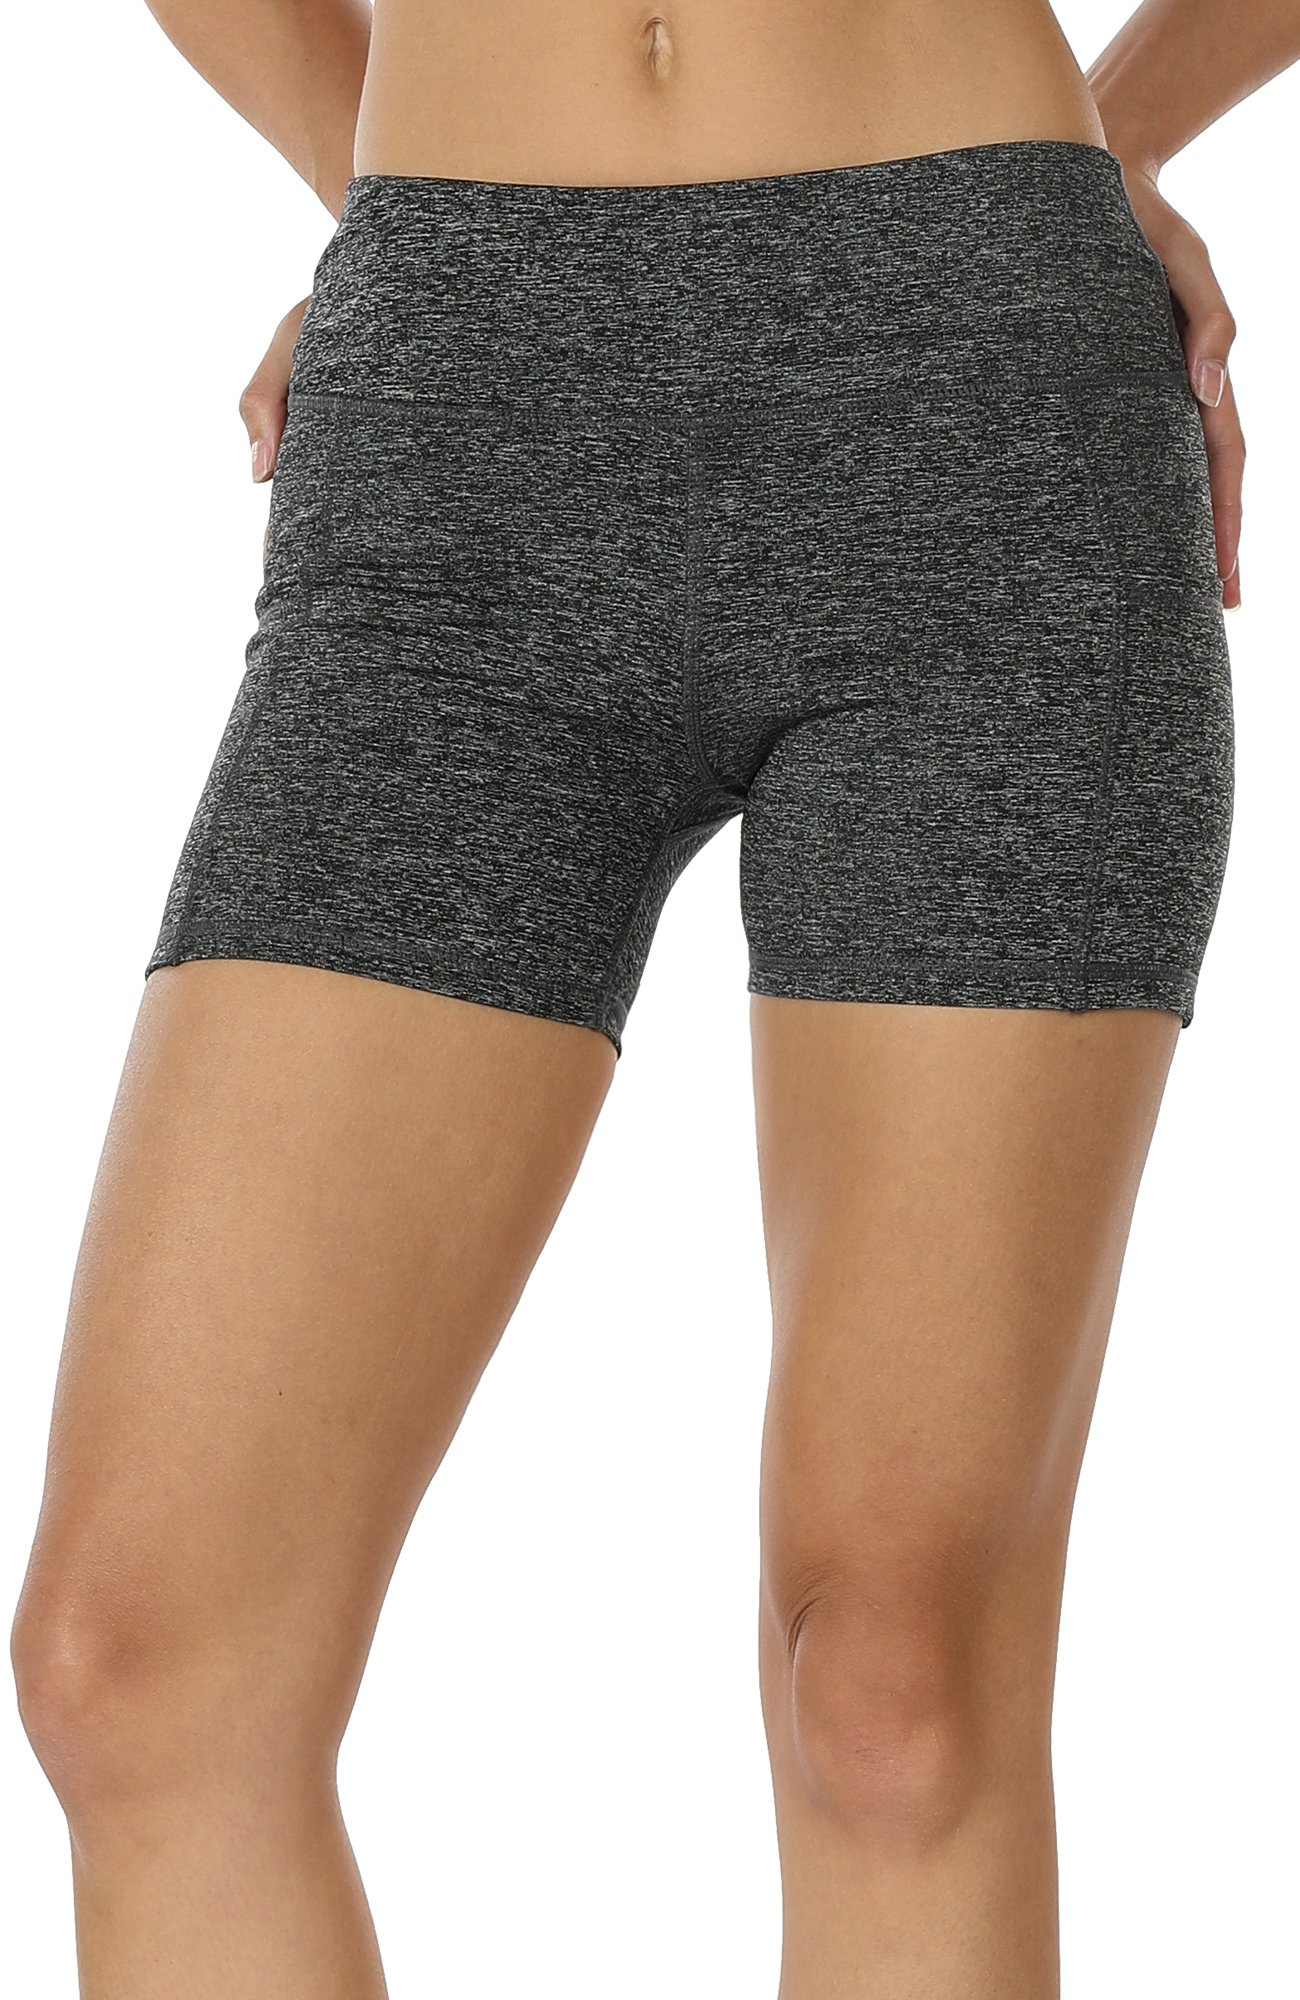 icyzone Workout Running Shorts Women - Yoga Exercise Lounge Athletic Activewear Compression Shorts Pockets & Drawstring (L, Charcoal)